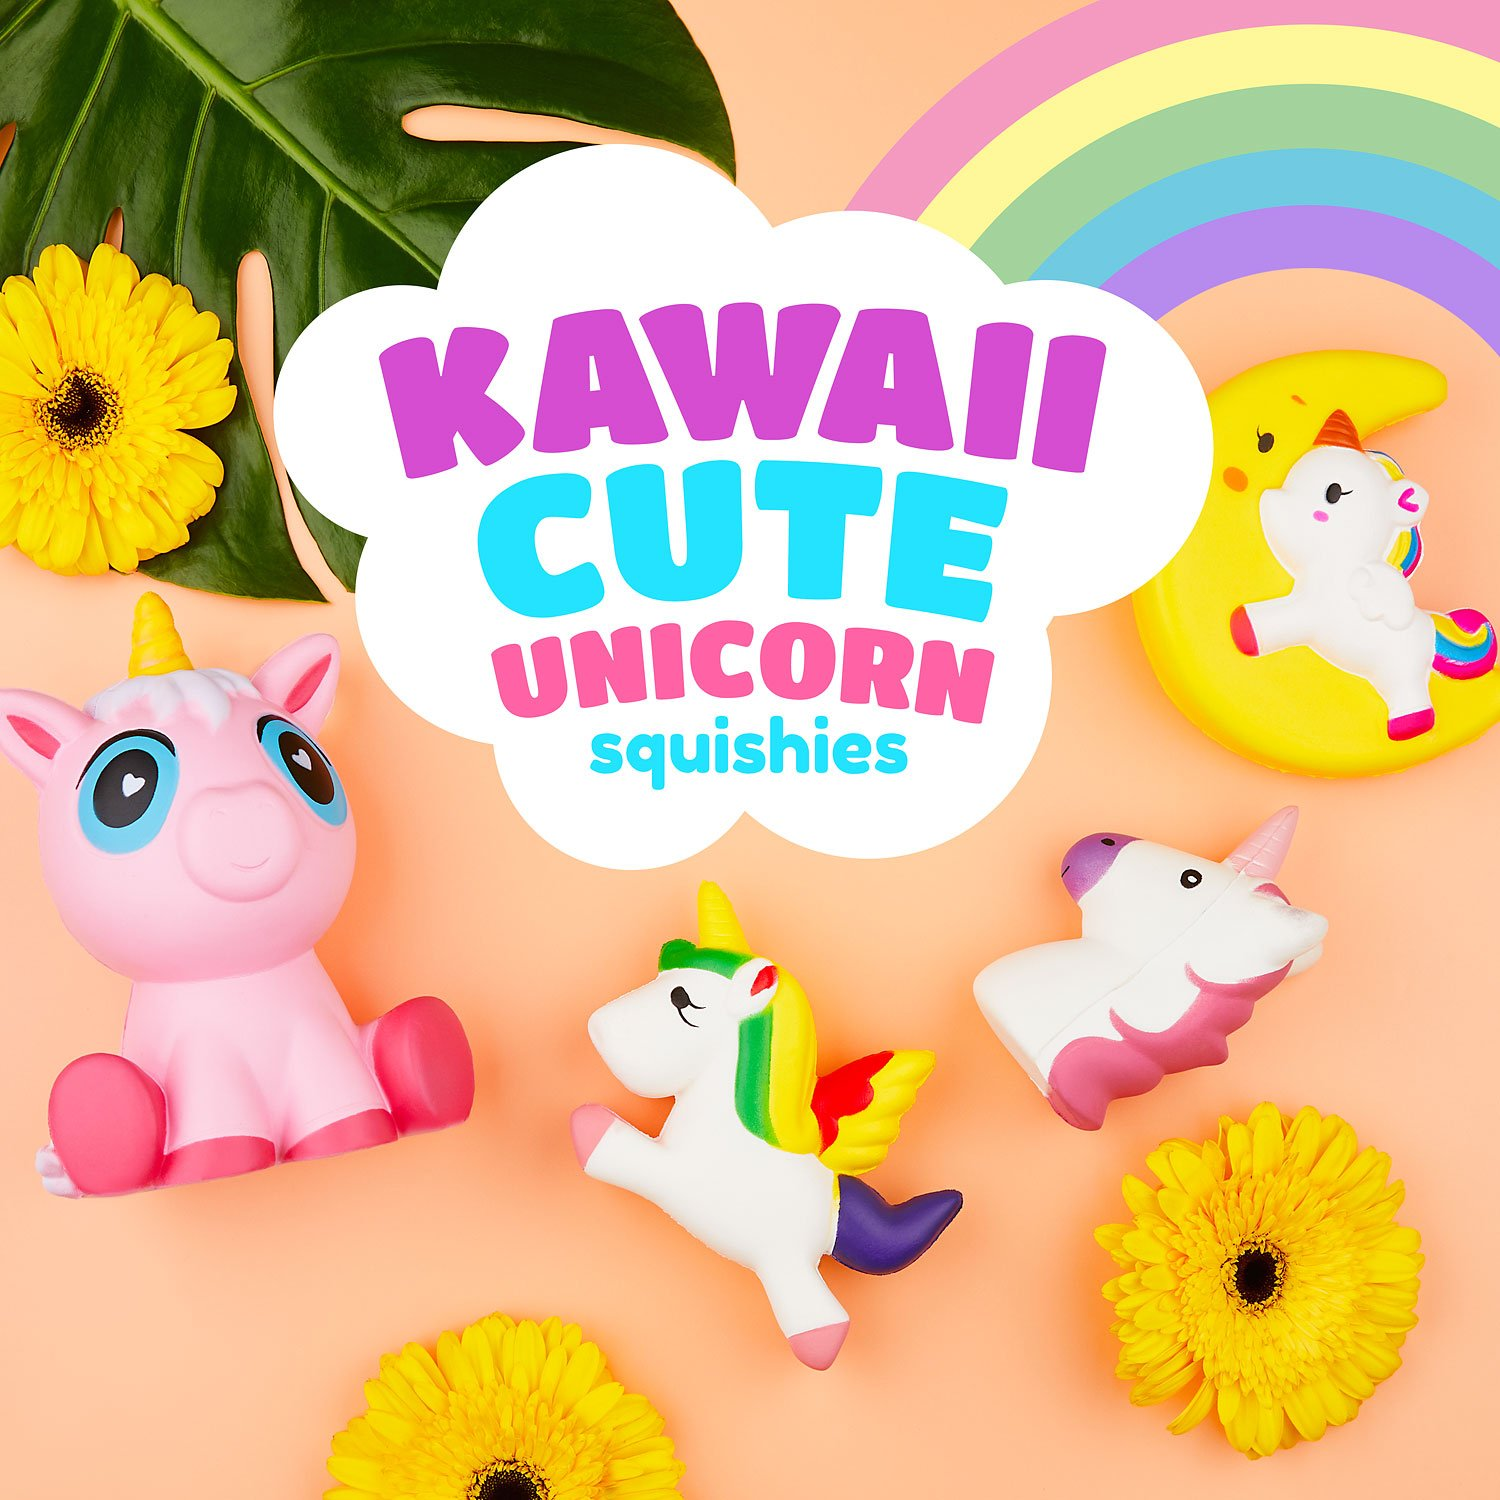 CORAL ENTERTAINMENTS Jumbo Unicorn Squishies Set 4 Piece Kawaii Slow Rise Foam Extra Large Unicorn Party Supplies Giant Squeeze Childrens Collectible Stress Fidget Toys